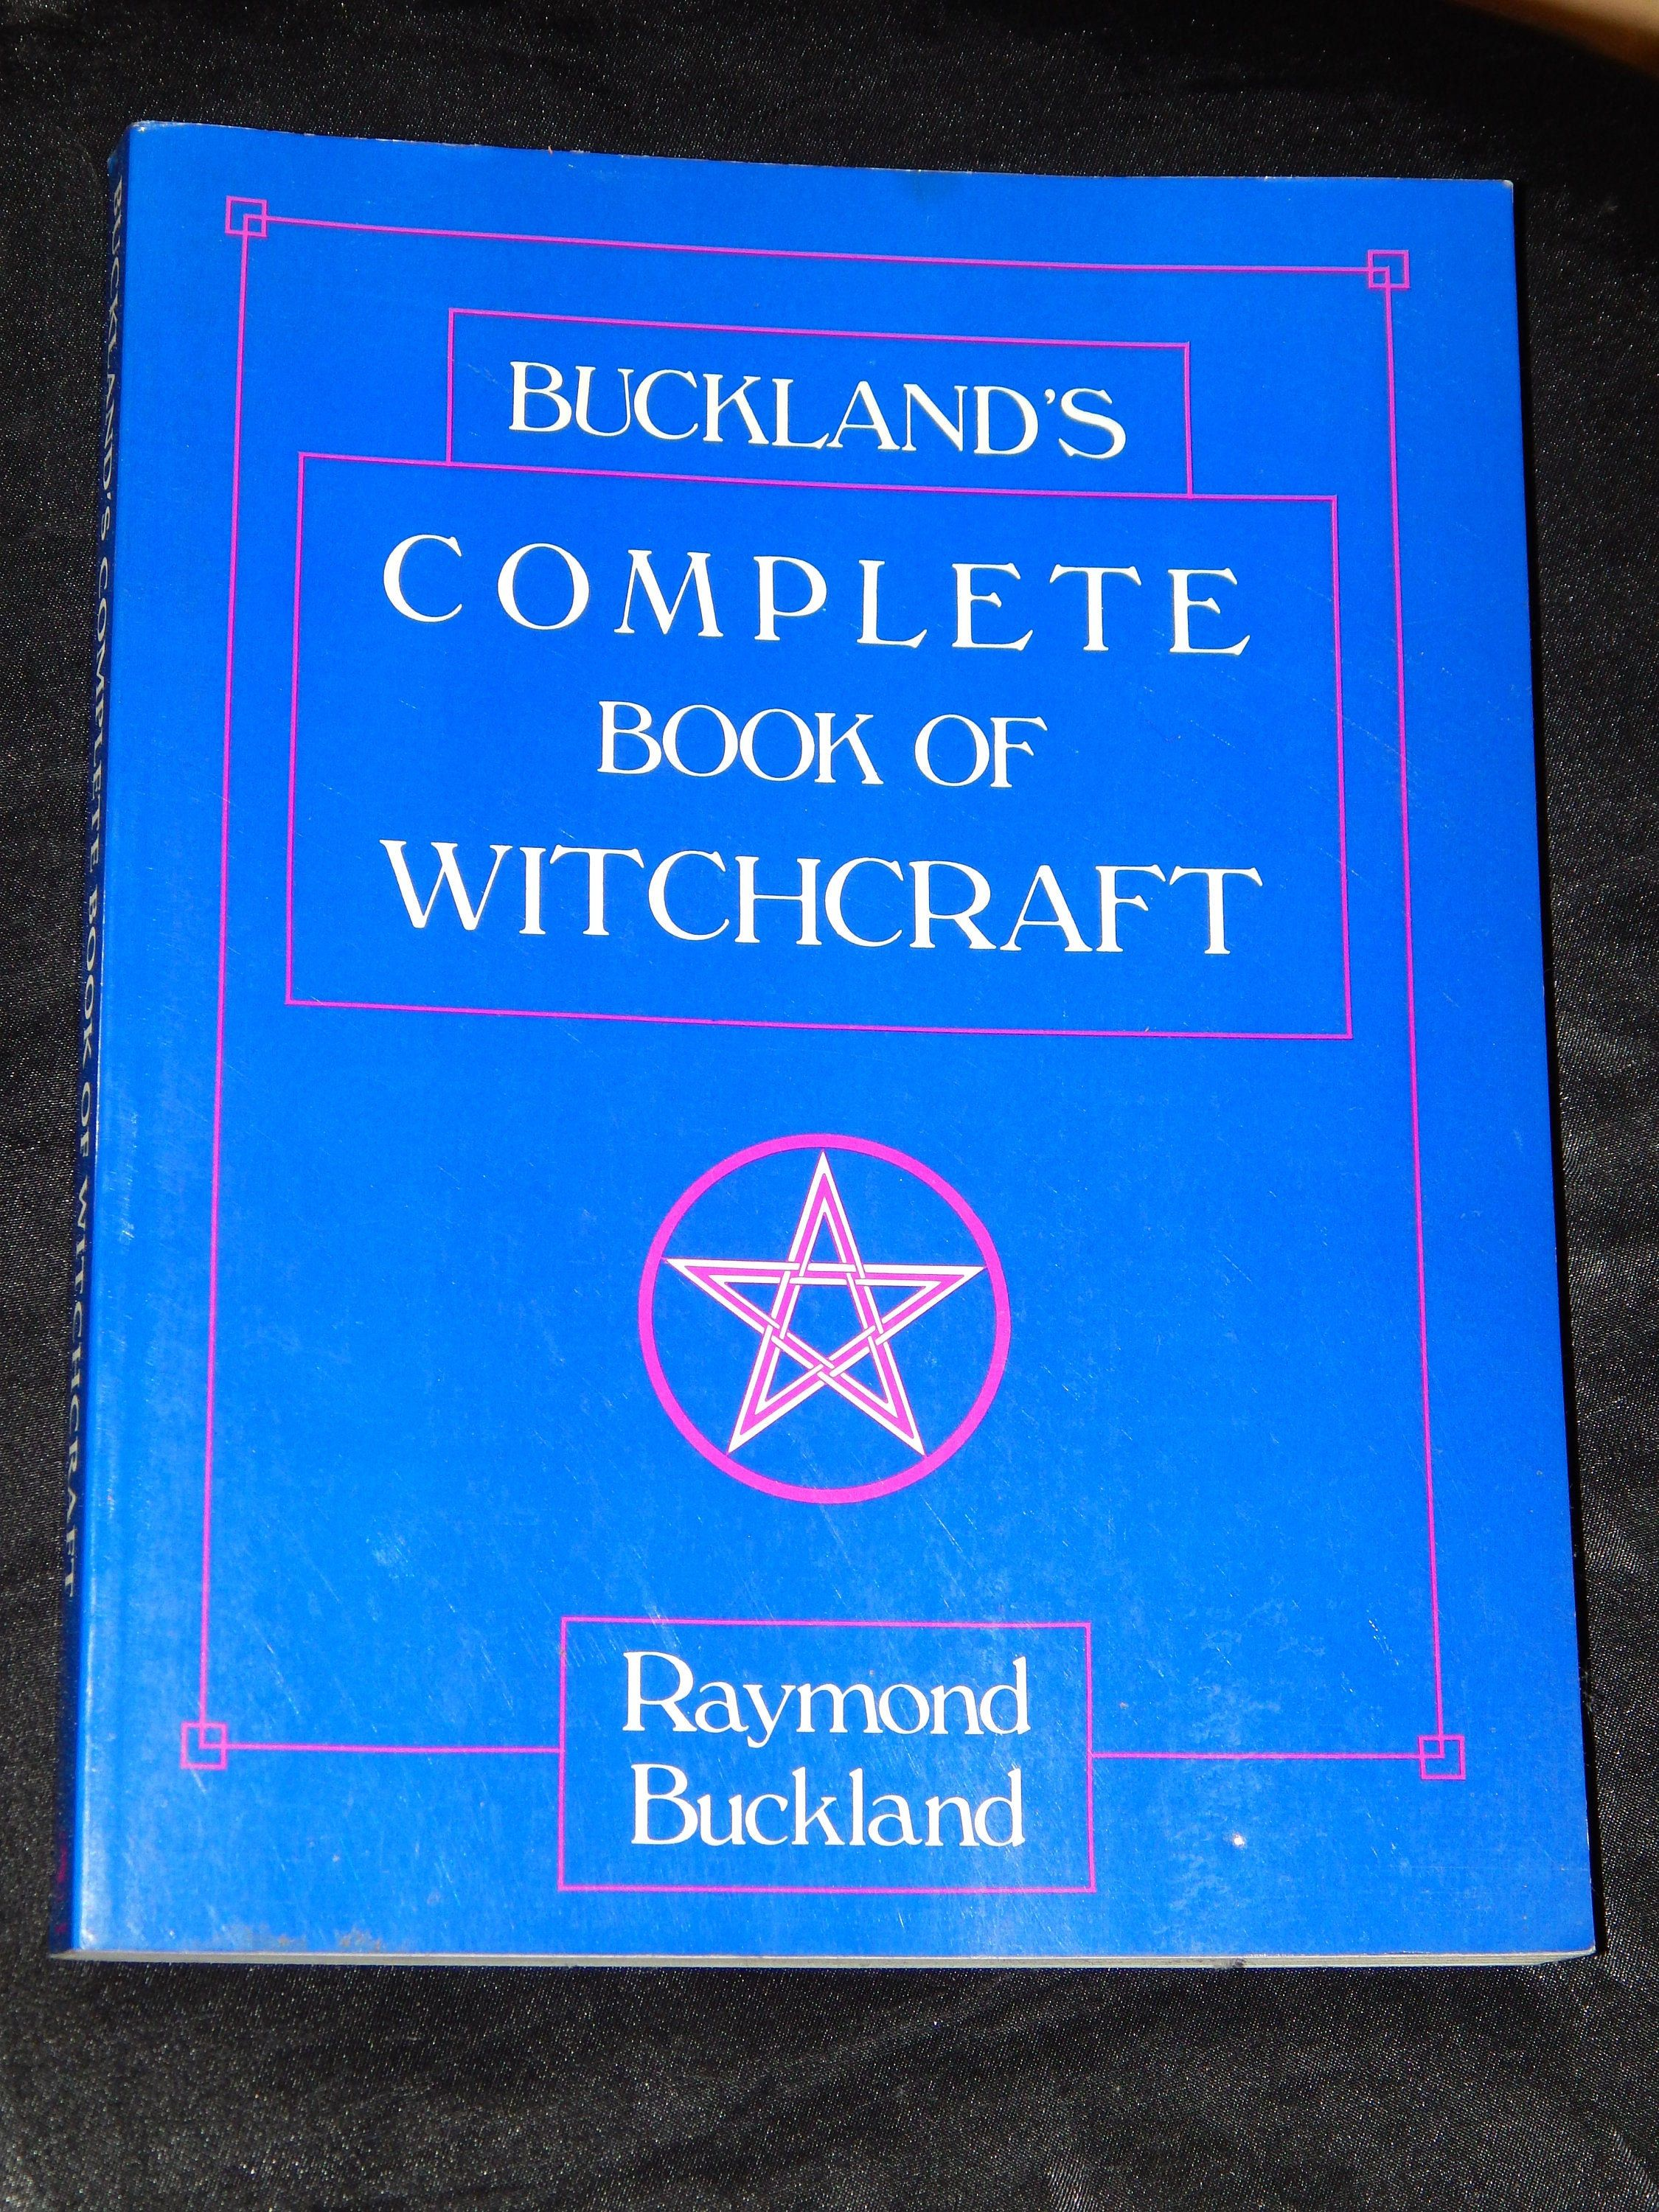 Bucklands complete book of witchcraft used books